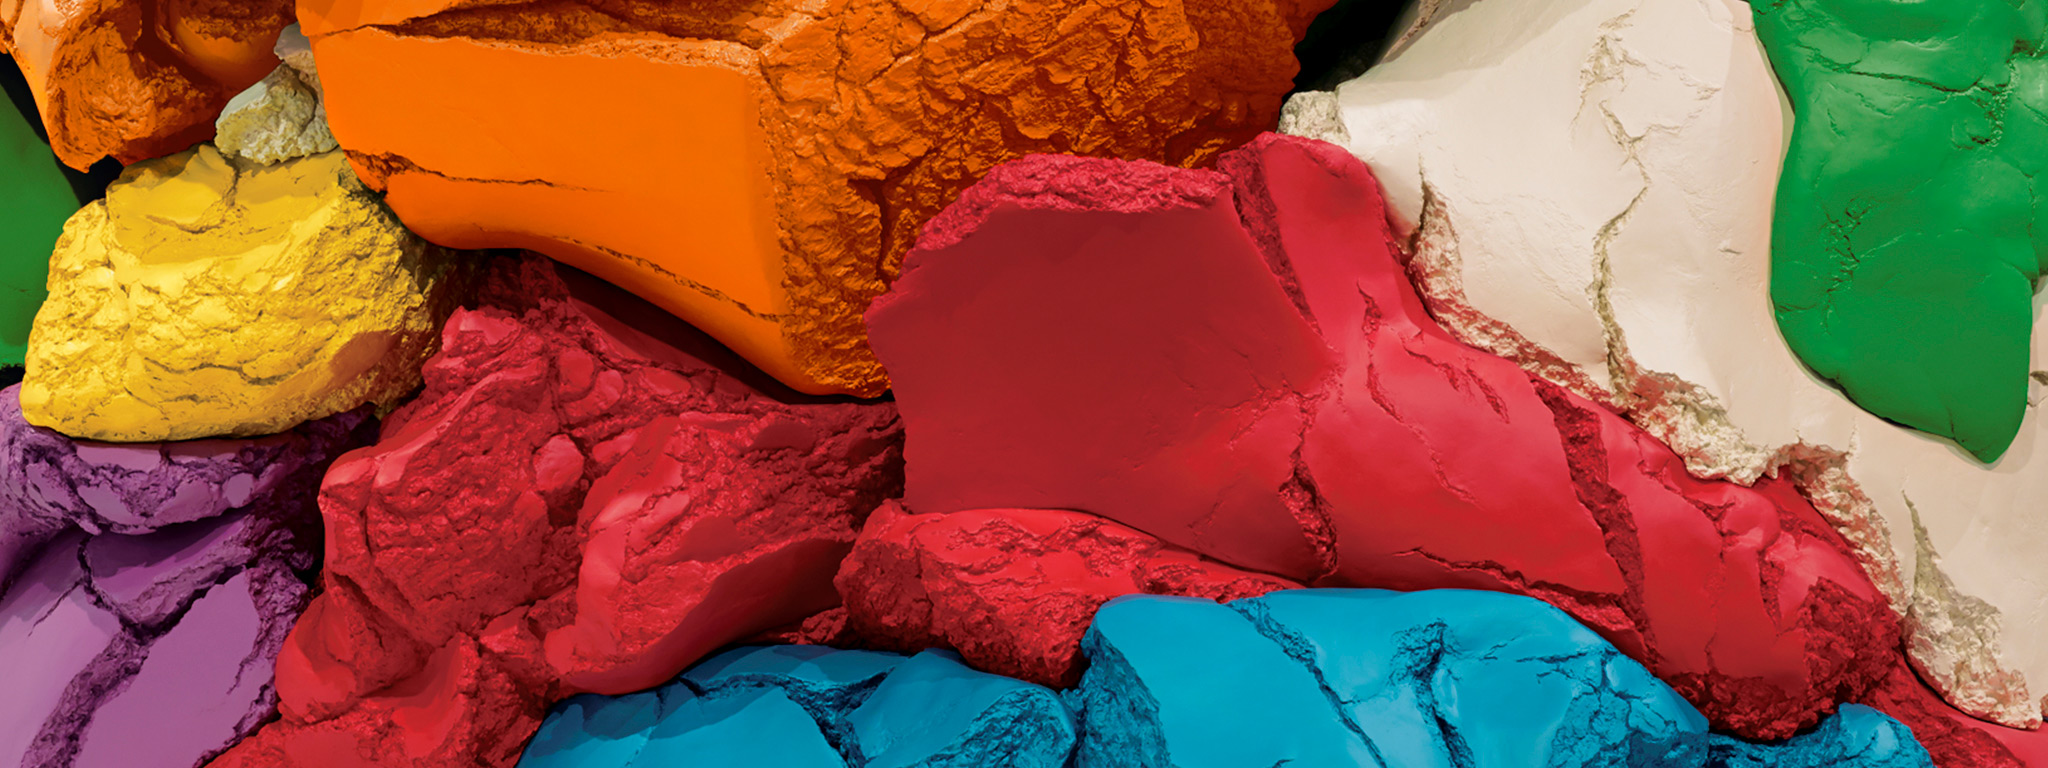 Play-Doh (detail), 1994–2014, Jeff Koons; polychromed aluminum. Collection of the artist. © Jeff Koons. Photo: Tom Powel Imaging